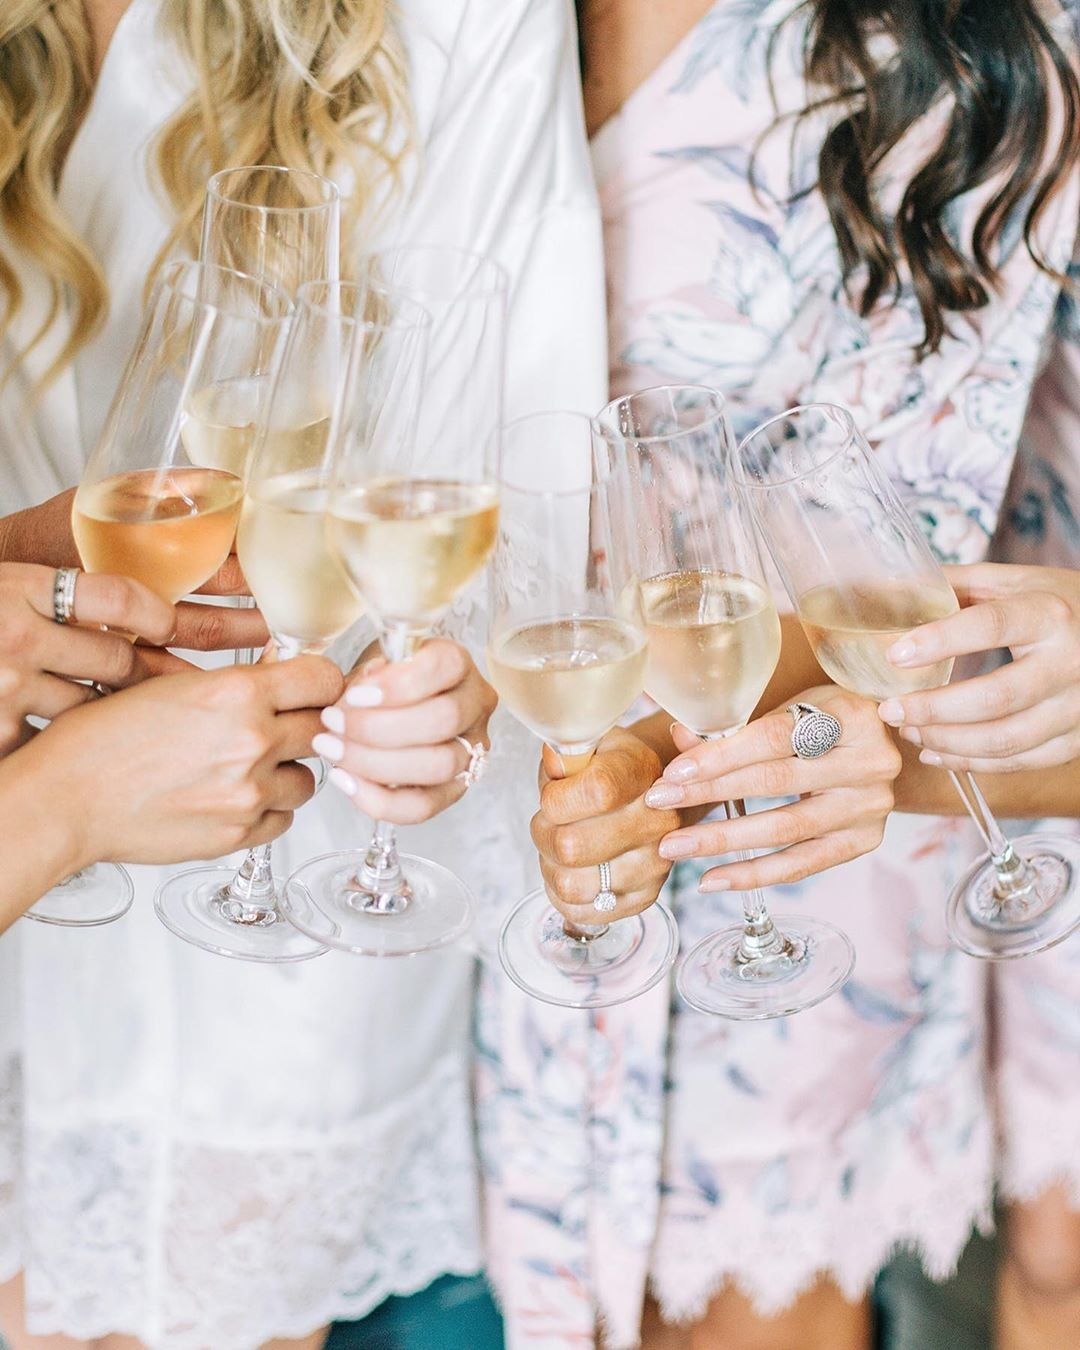 Cheers to a wedding weekend.